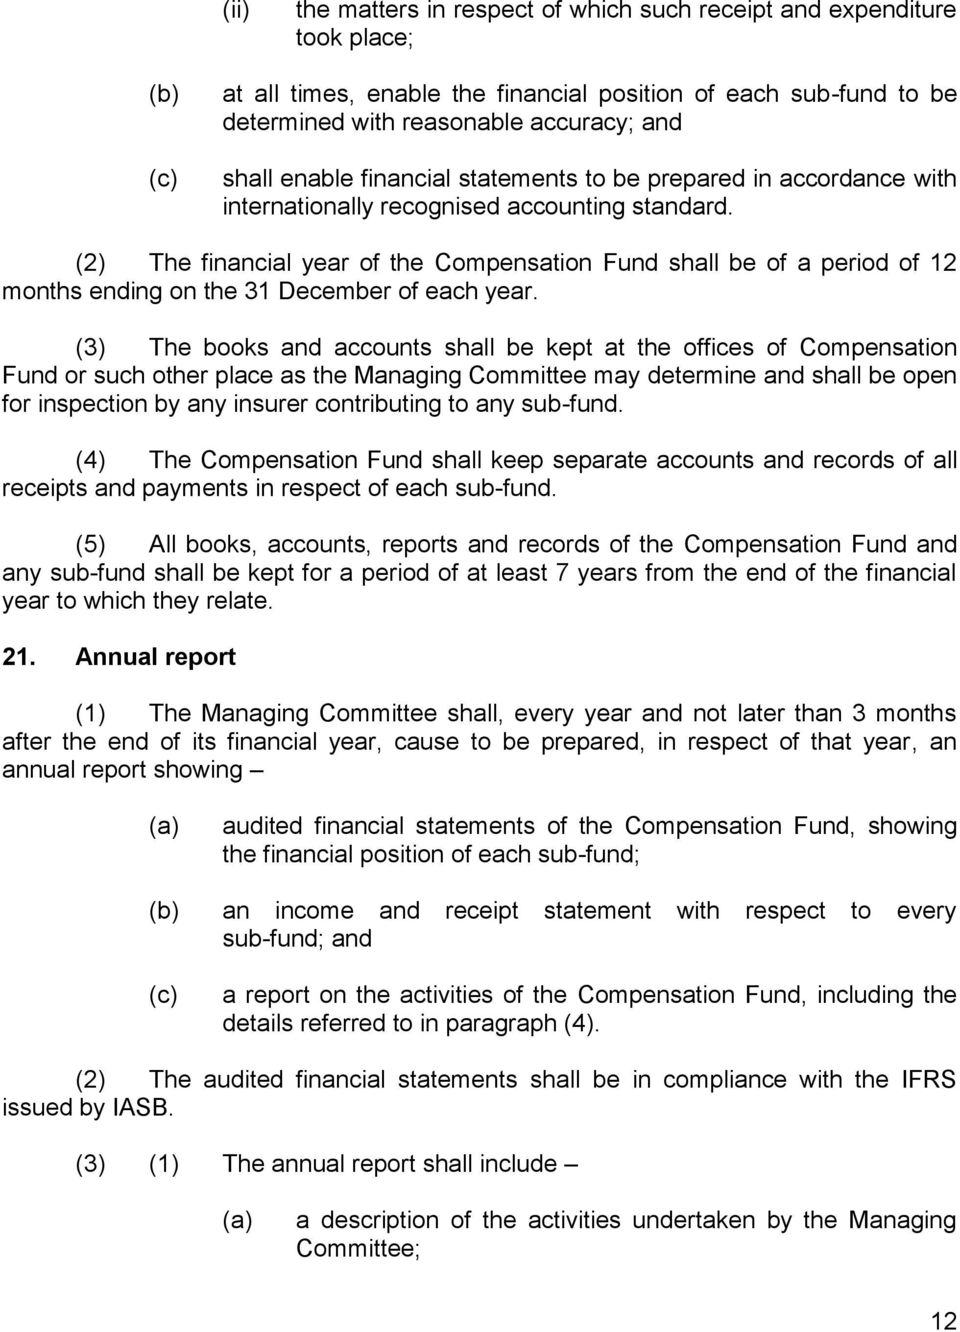 (2) The financial year of the Compensation Fund shall be of a period of 12 months ending on the 31 December of each year.